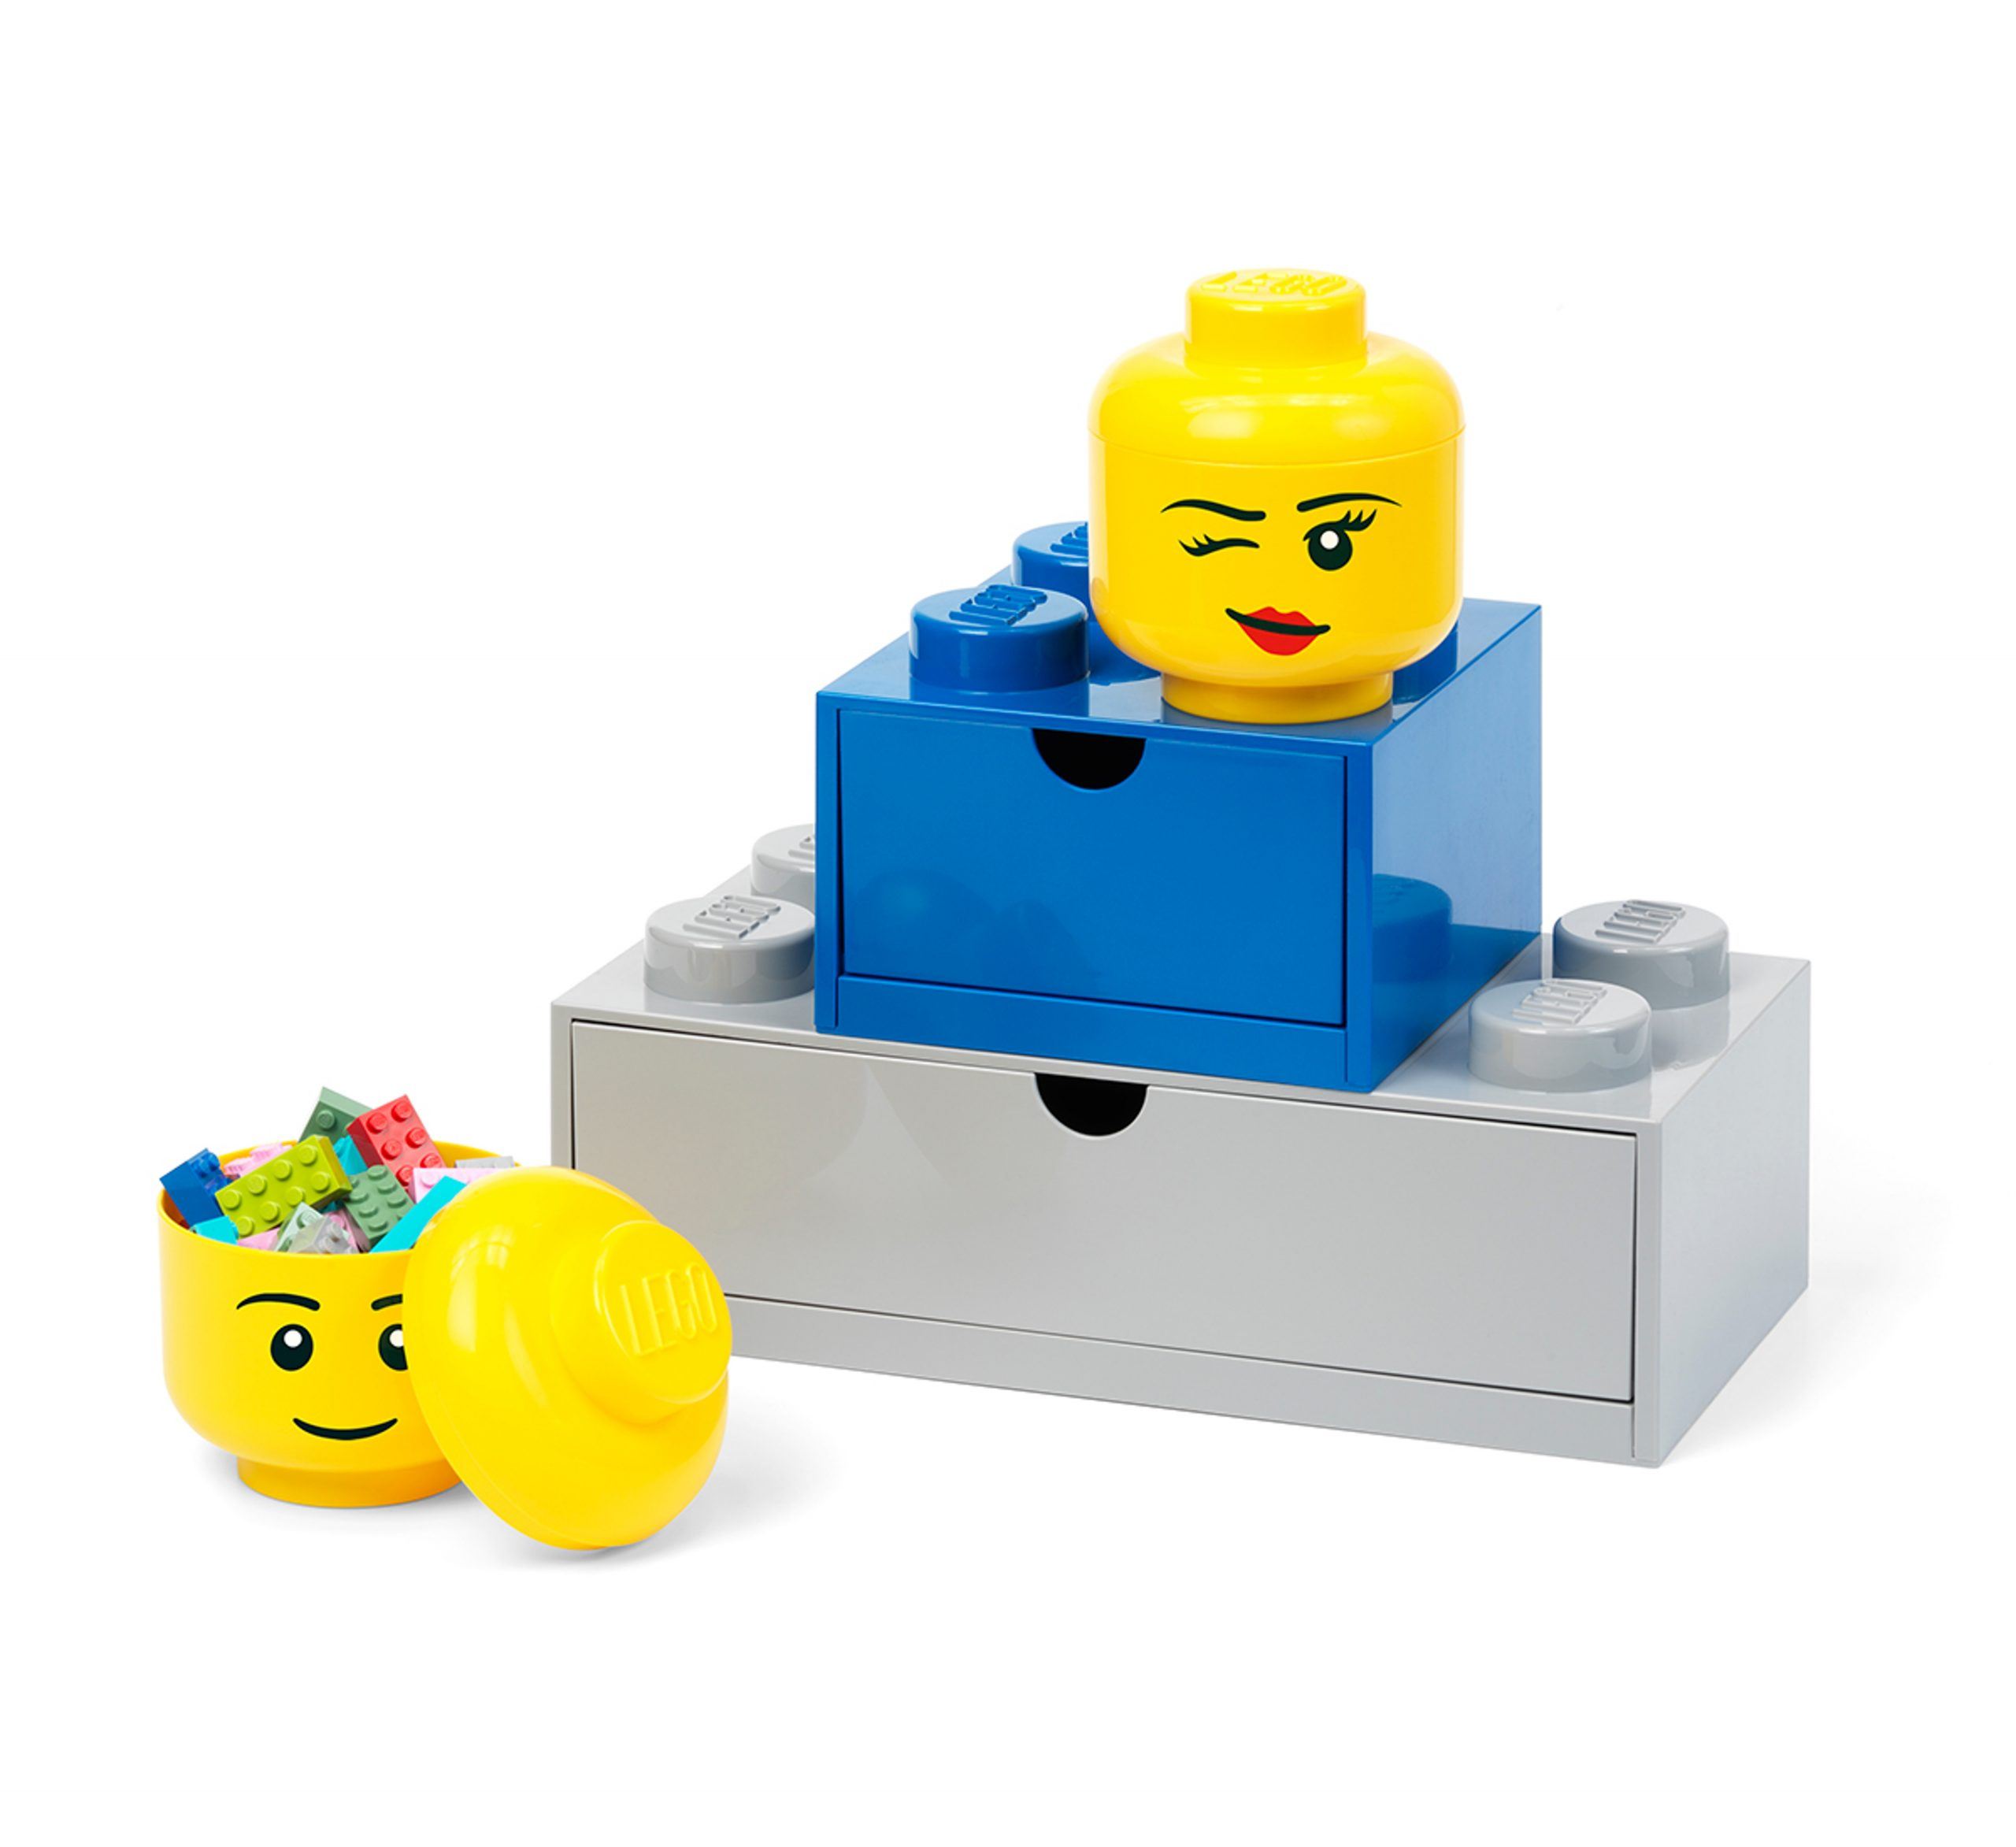 lego 5006211 storage head mini winking scaled